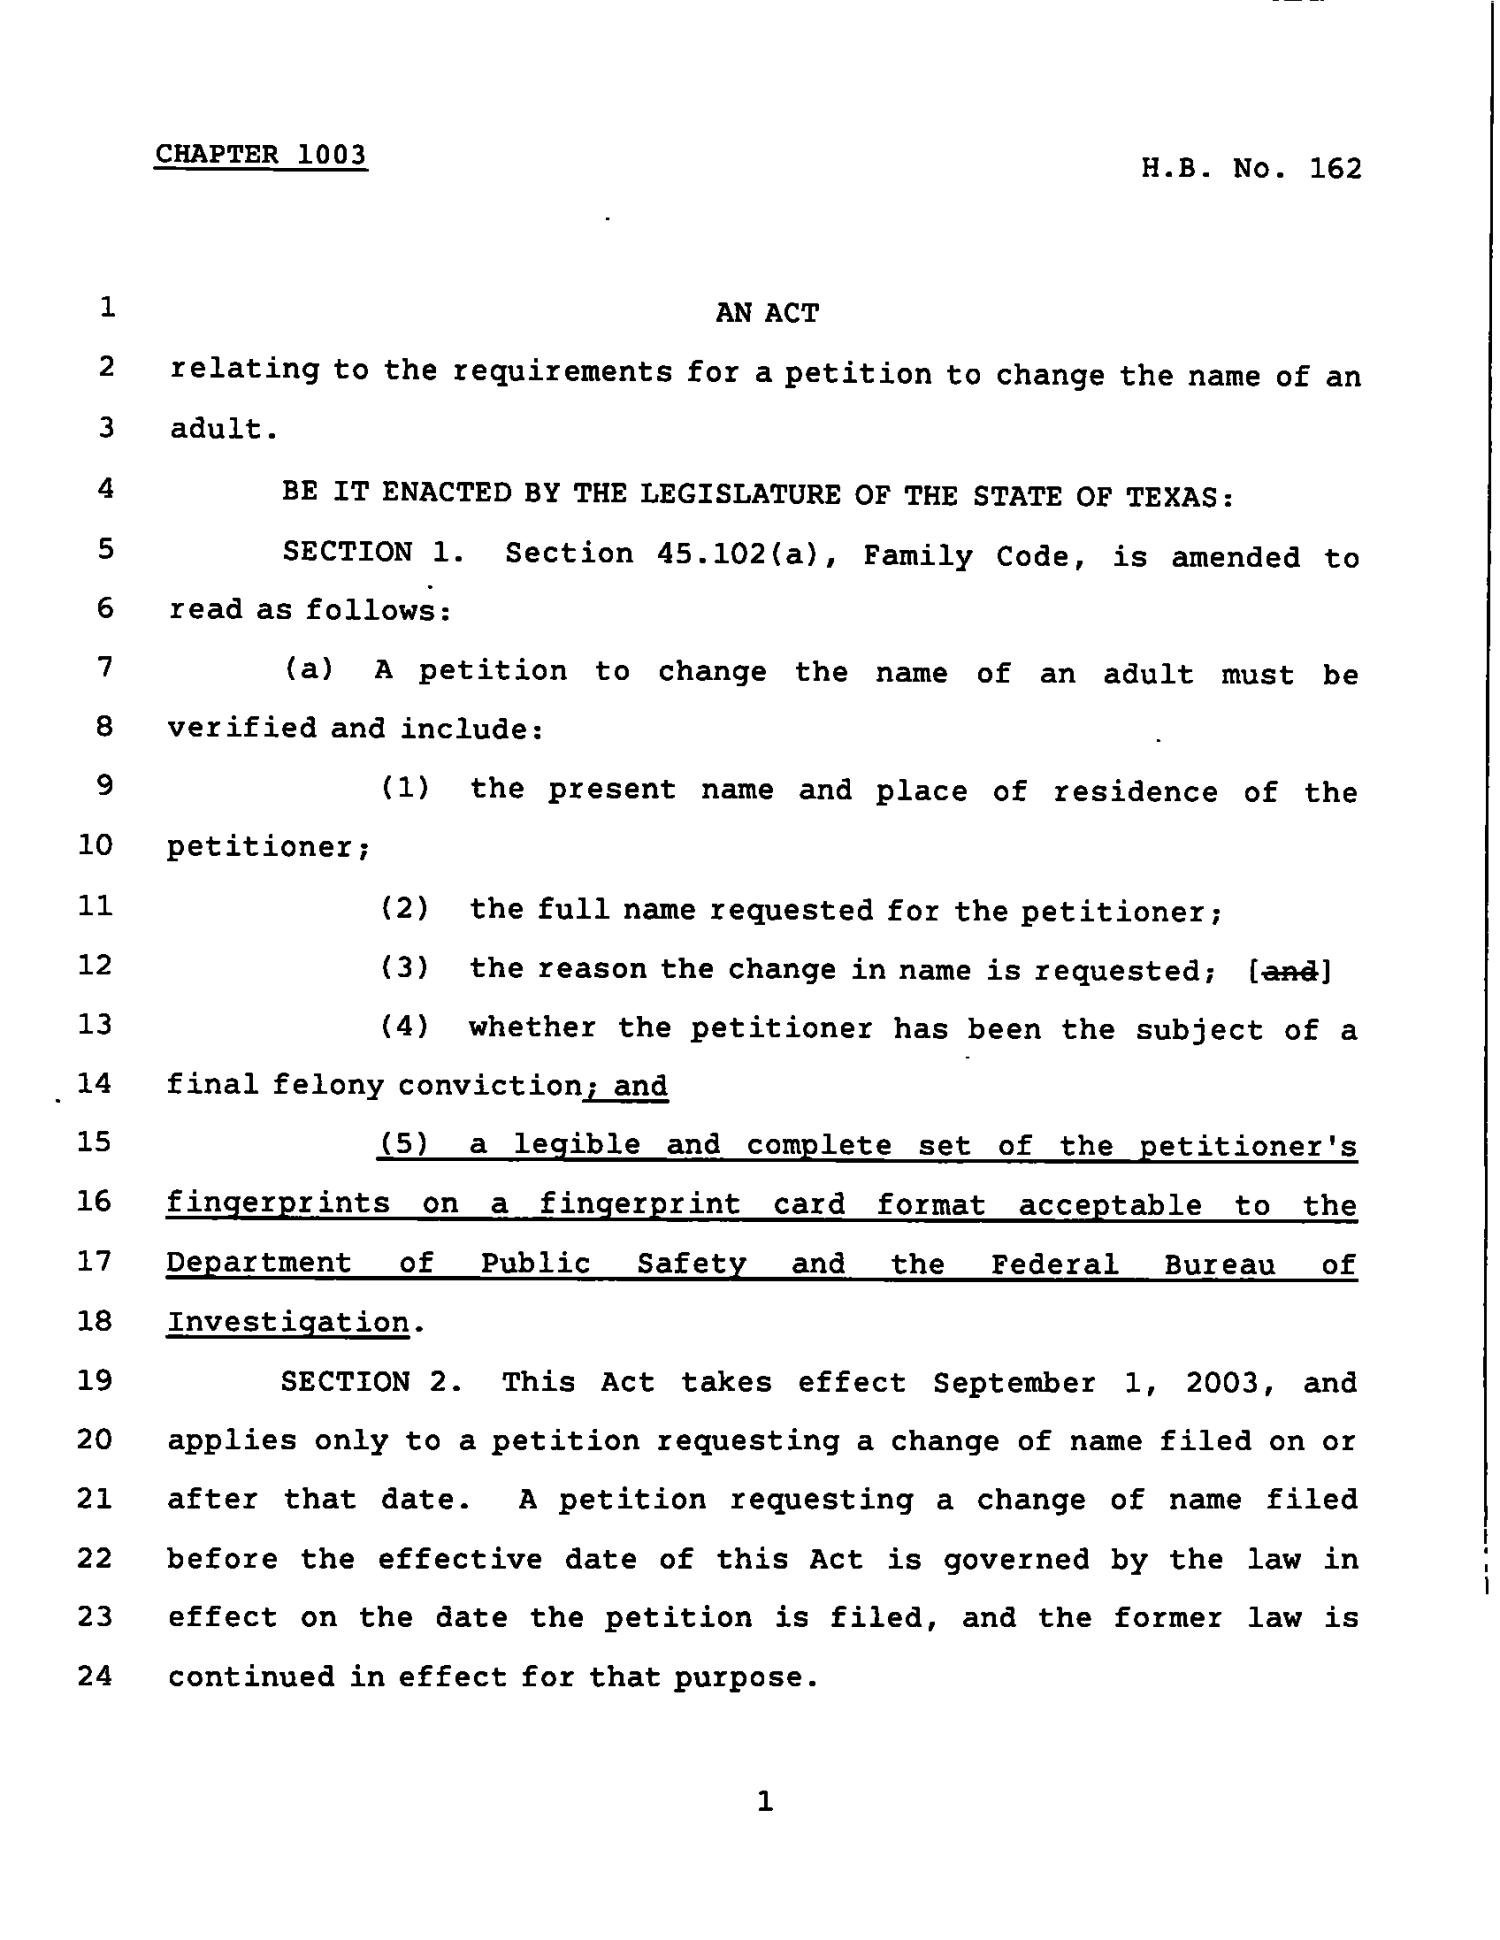 78th Texas Legislature, Regular Session, House Bill 162, Chapter 1003                                                                                                      [Sequence #]: 1 of 2